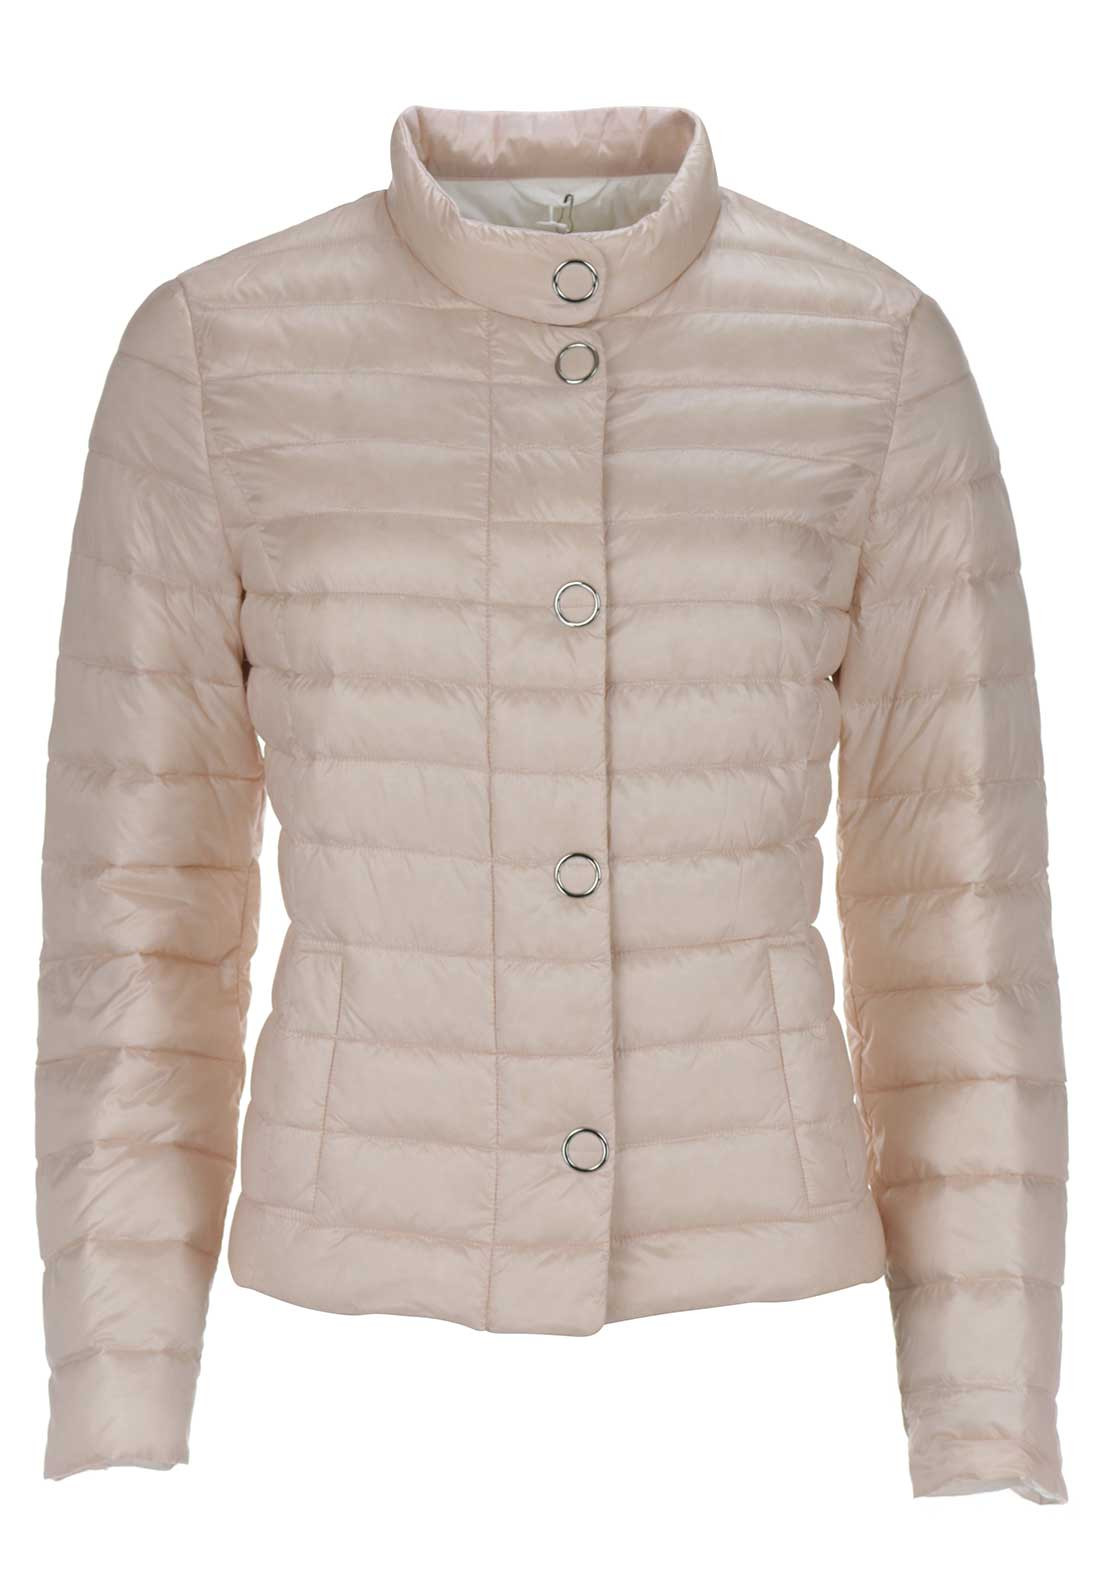 Gerry Weber Casual Padded light Jacket. Pink